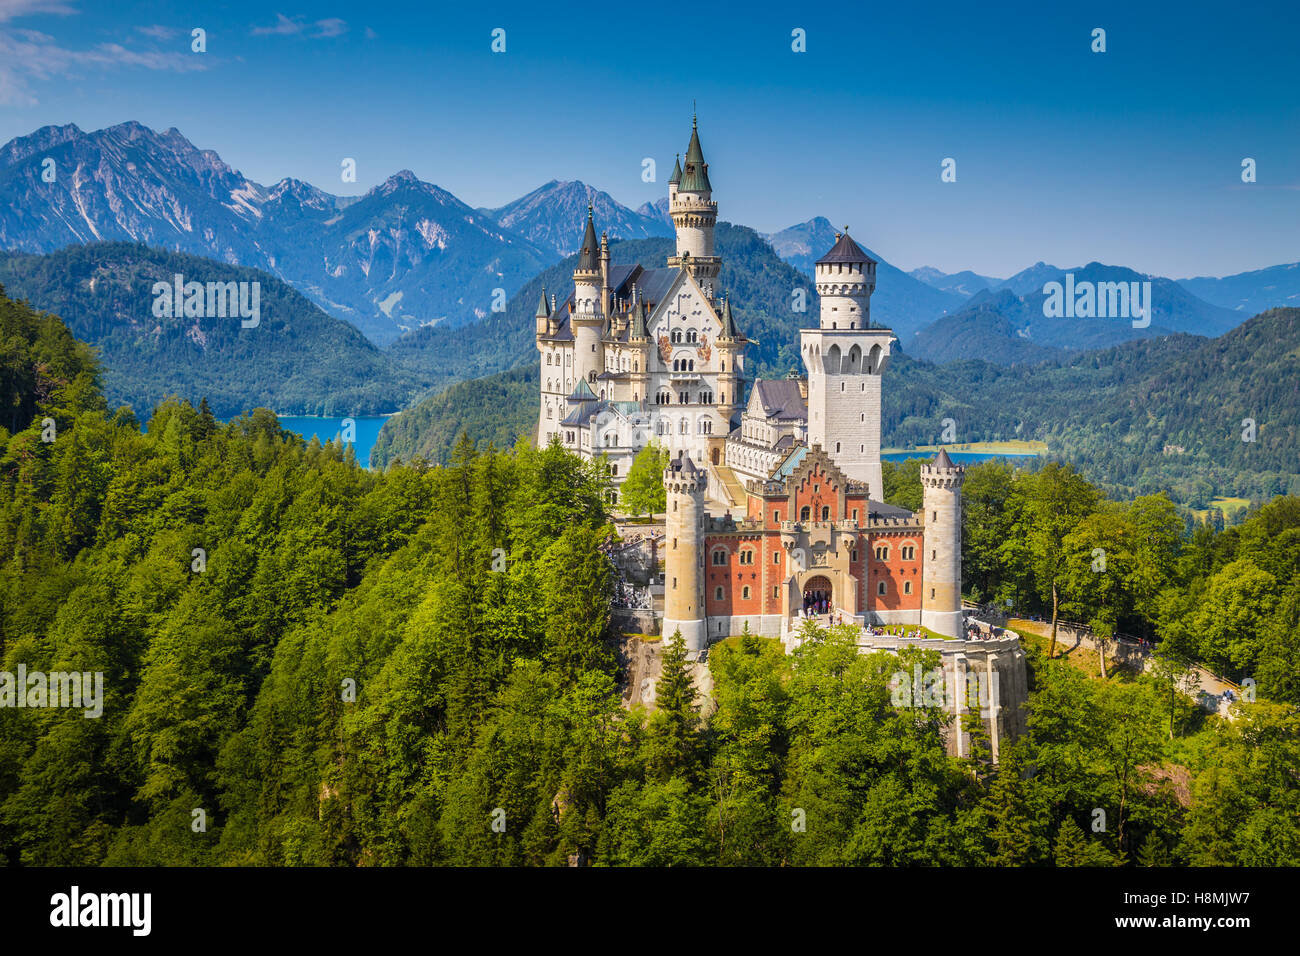 Classic view of world-famous Neuschwanstein Castle, one of Europe's most visited castles, in summer, Bavaria, - Stock Image